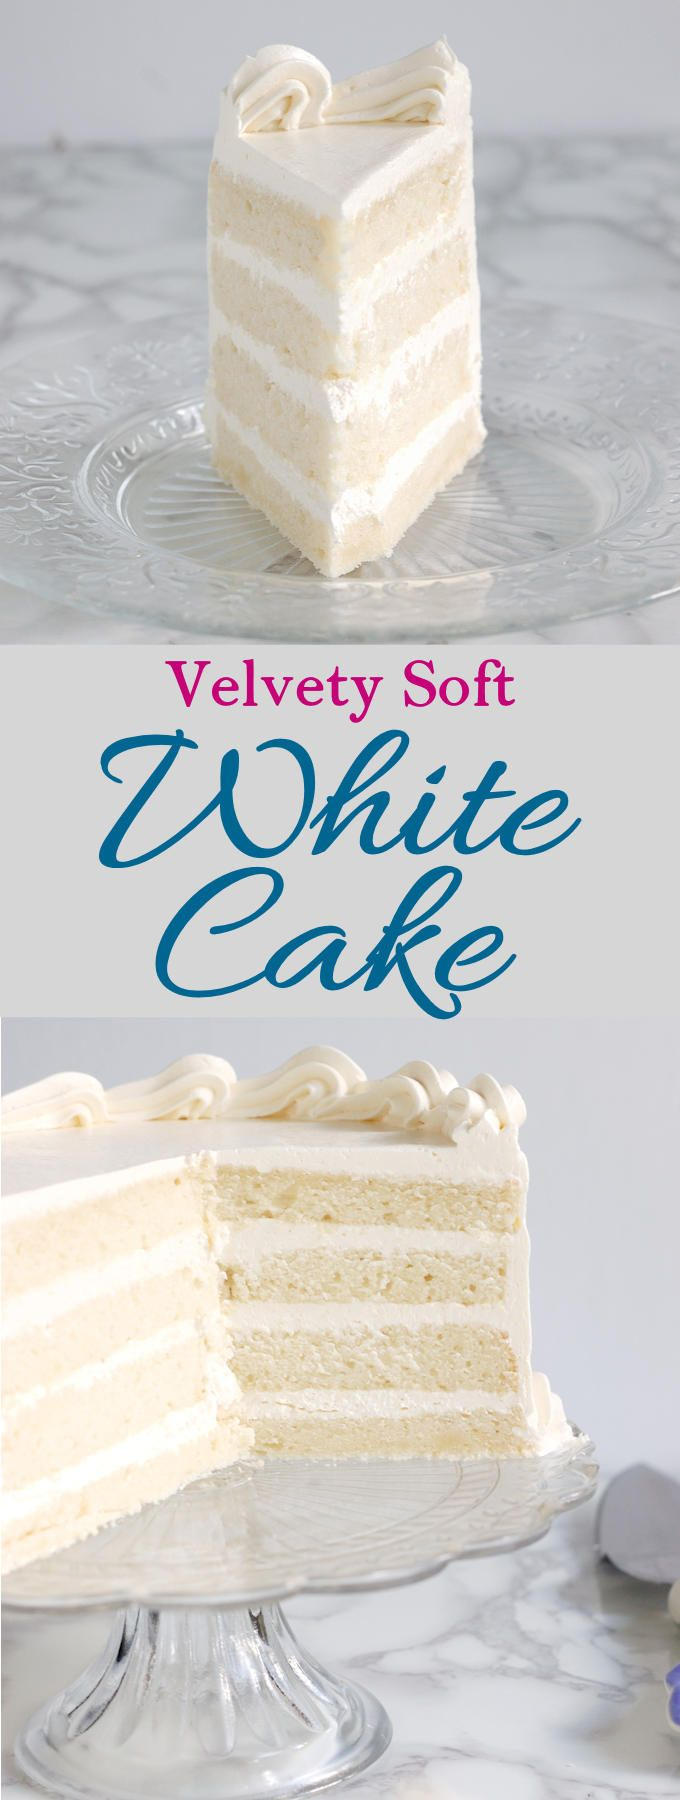 Velvety, soft white cake made from scratch is easy to do. How you mix the cake makes a big difference. Find out why the reverse creaming technique is the way to get a white cake with a tender and moist crumb.